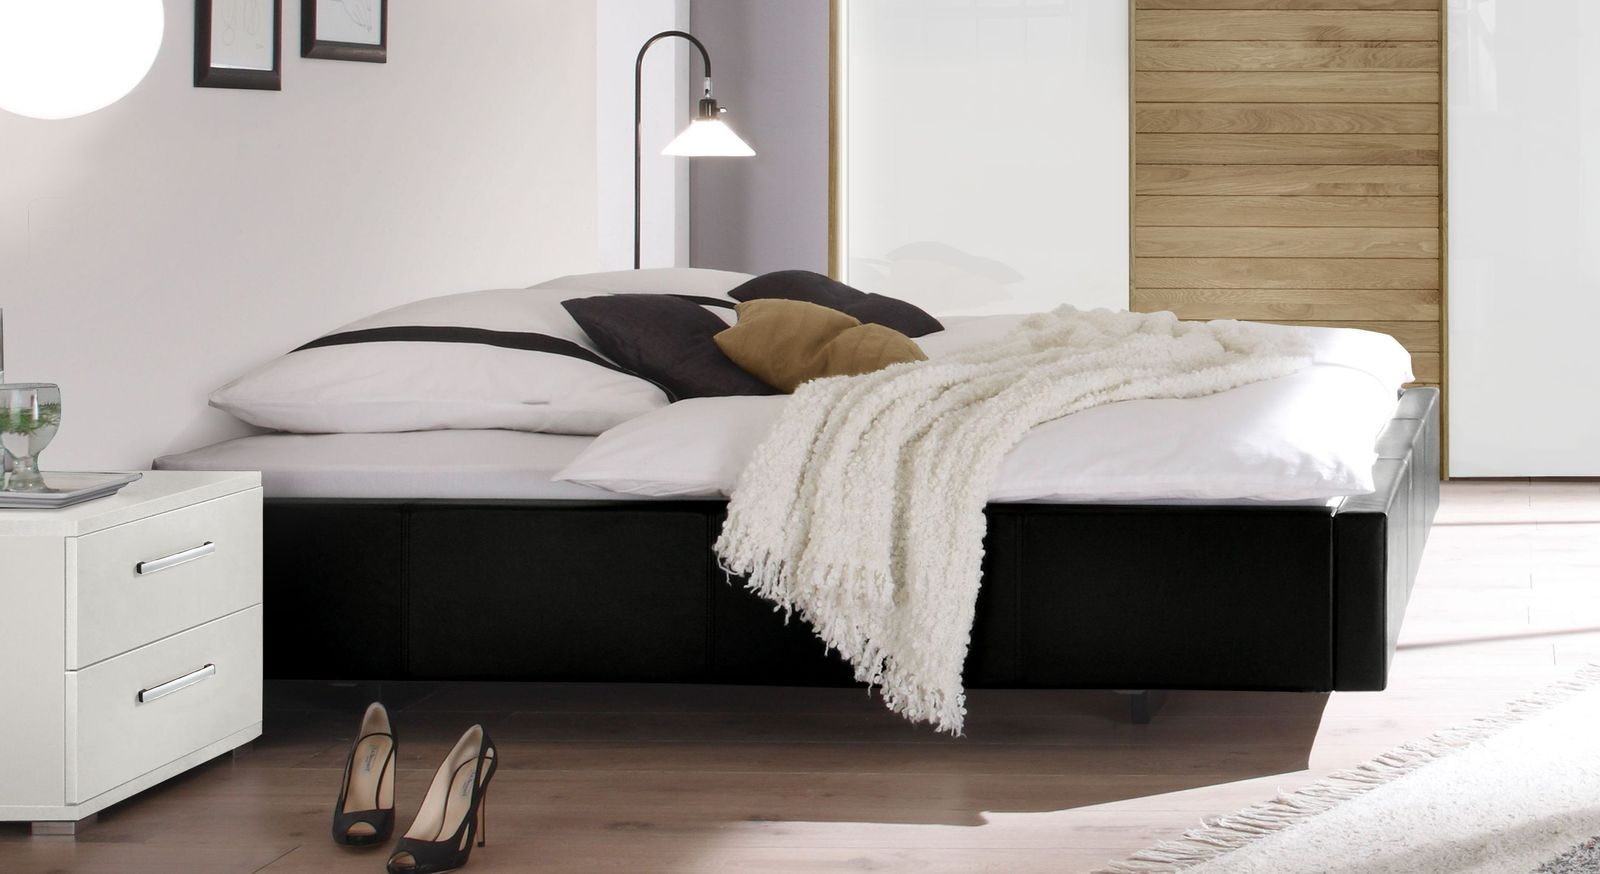 modernes polsterbett ohne kopfteil in schwebeoptik gordon. Black Bedroom Furniture Sets. Home Design Ideas